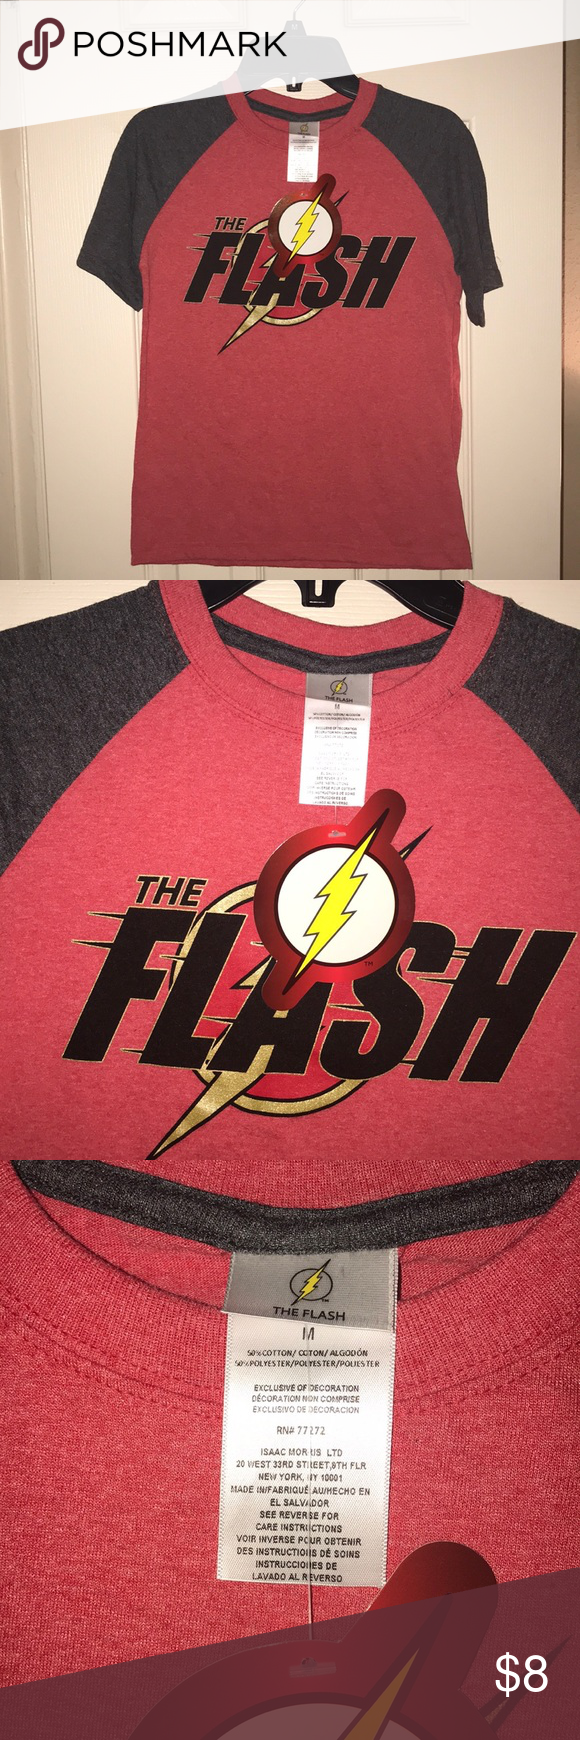 Youth Reverse Flash T-Shirt Adult The Flash